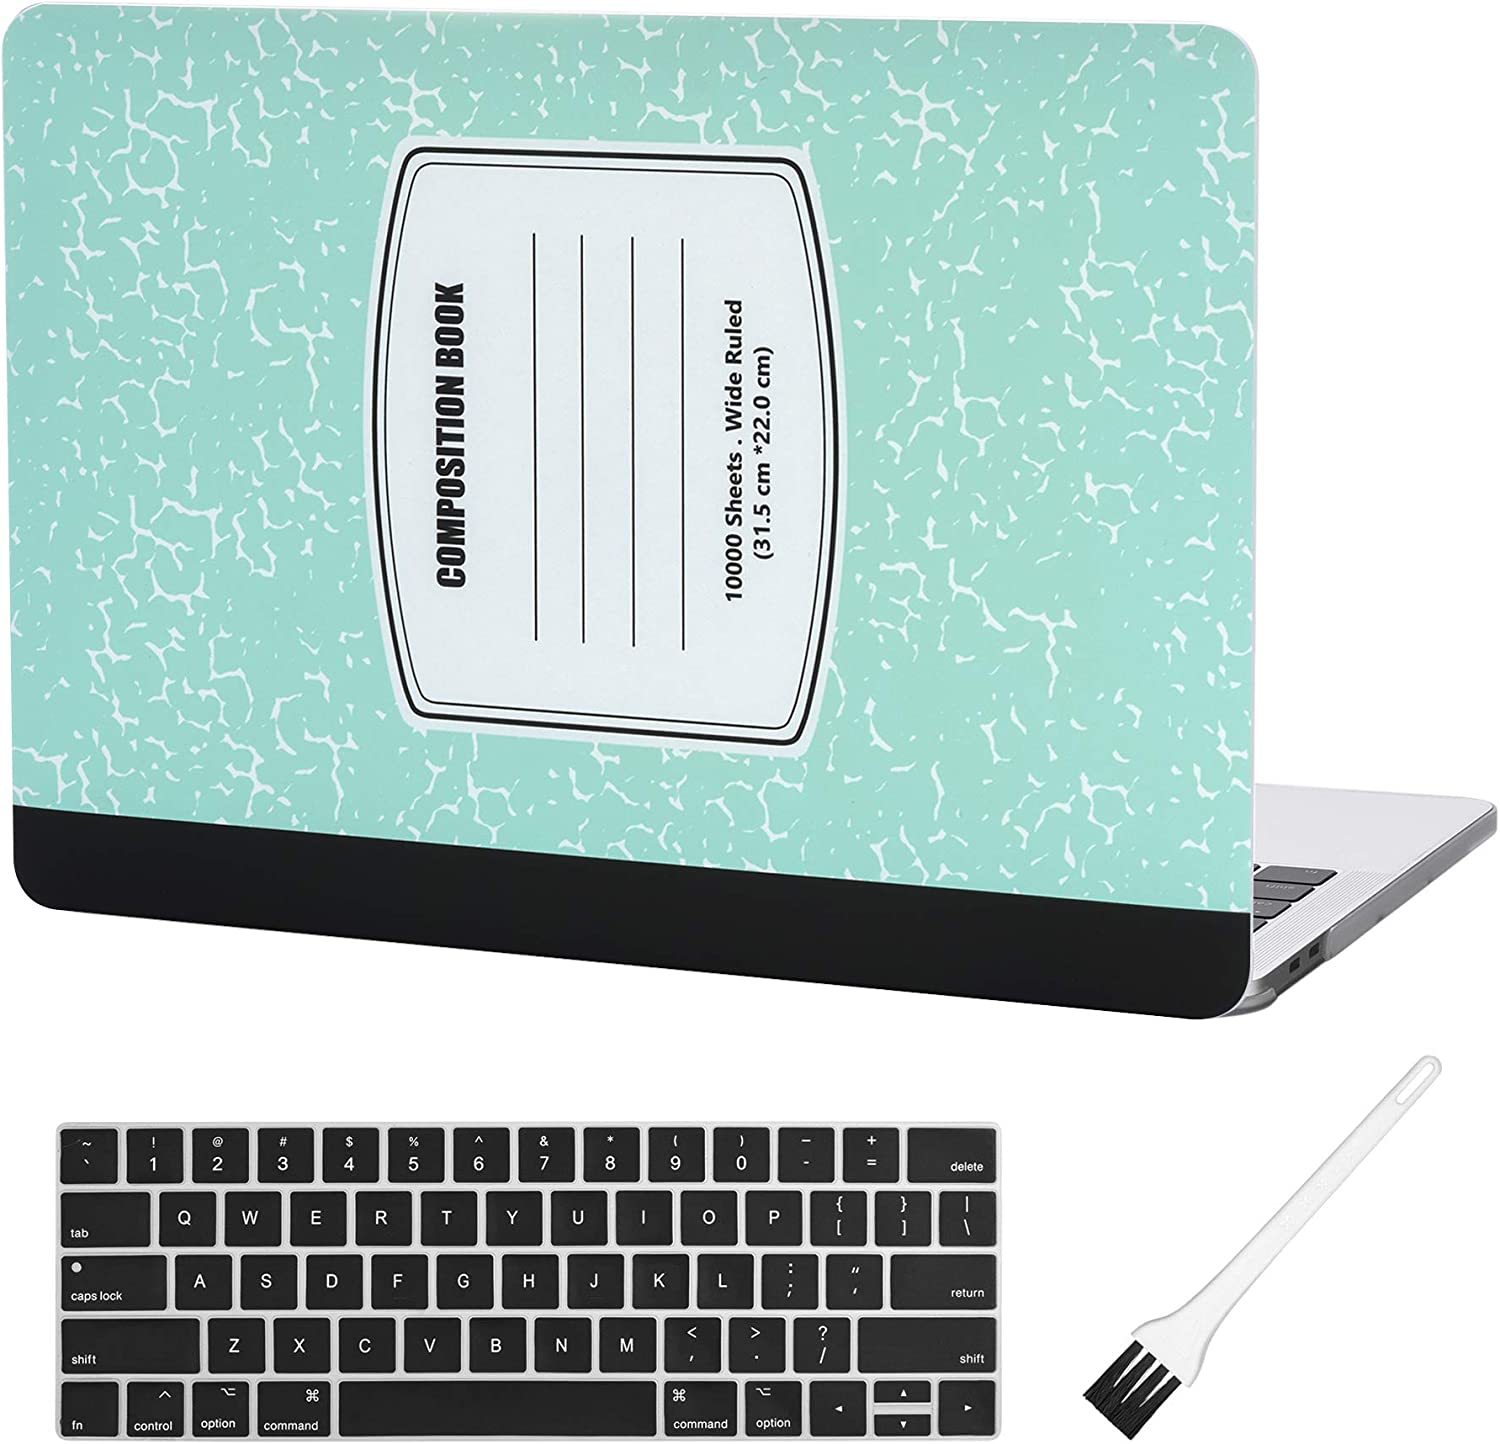 MacBook 12 Inch Plastic Hard Shell Case & A1534 Silicone Keyboard Cover Composition Notebook A1534 MacBook Air 12 Inch Case(Newest Version 2019/2018/2017/2016/2015)-Turquoise Notebook